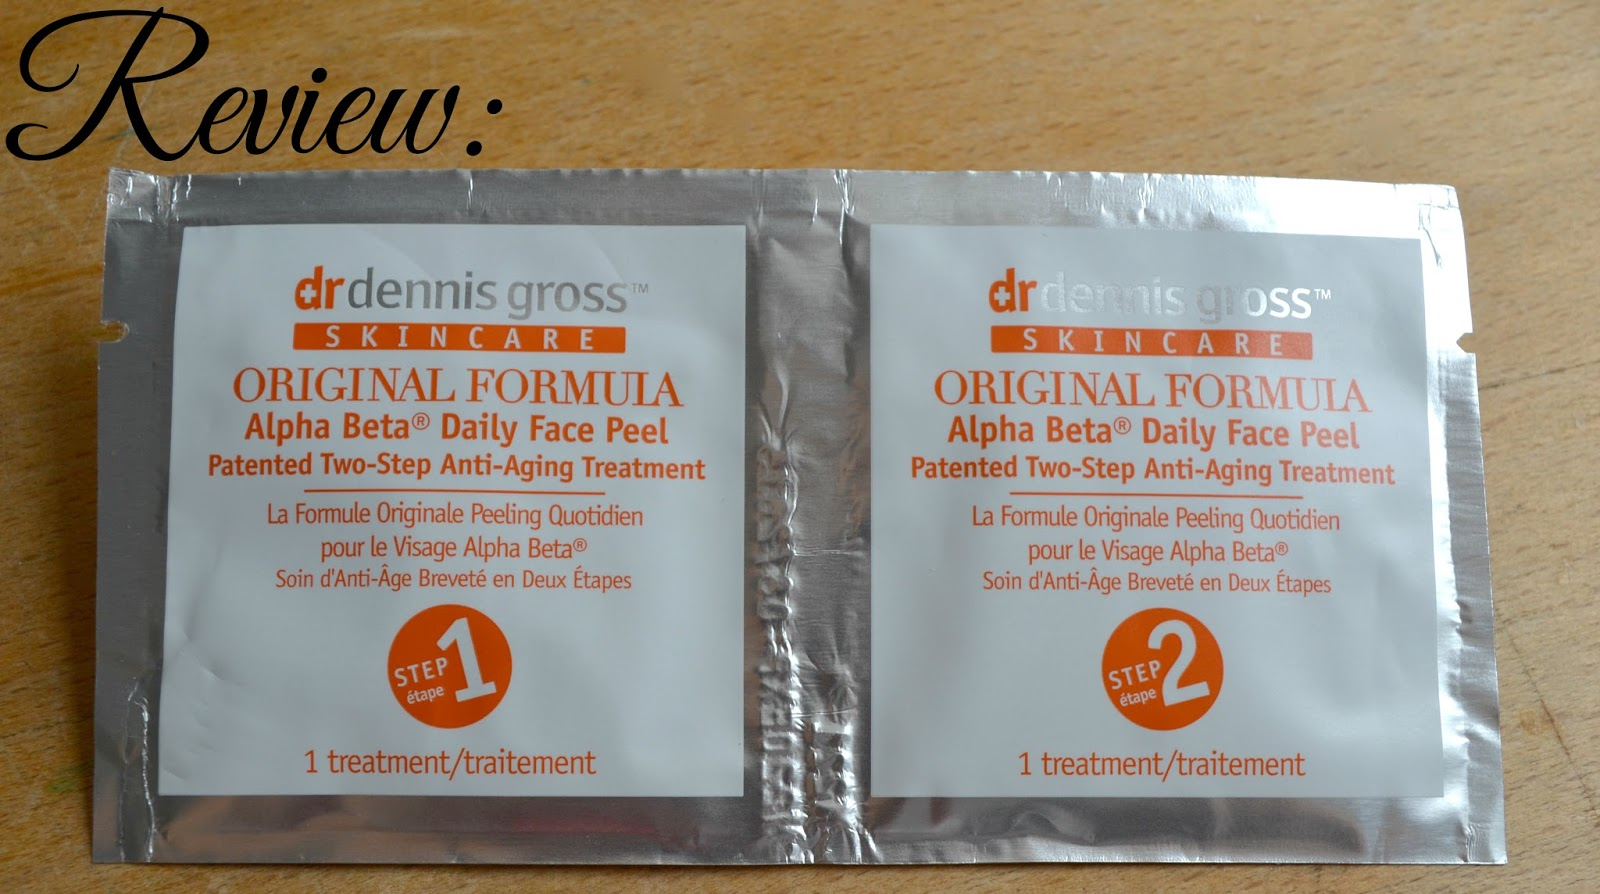 Beauty Review: Dr Dennis Gross Alpha Beta Daily Face Peel